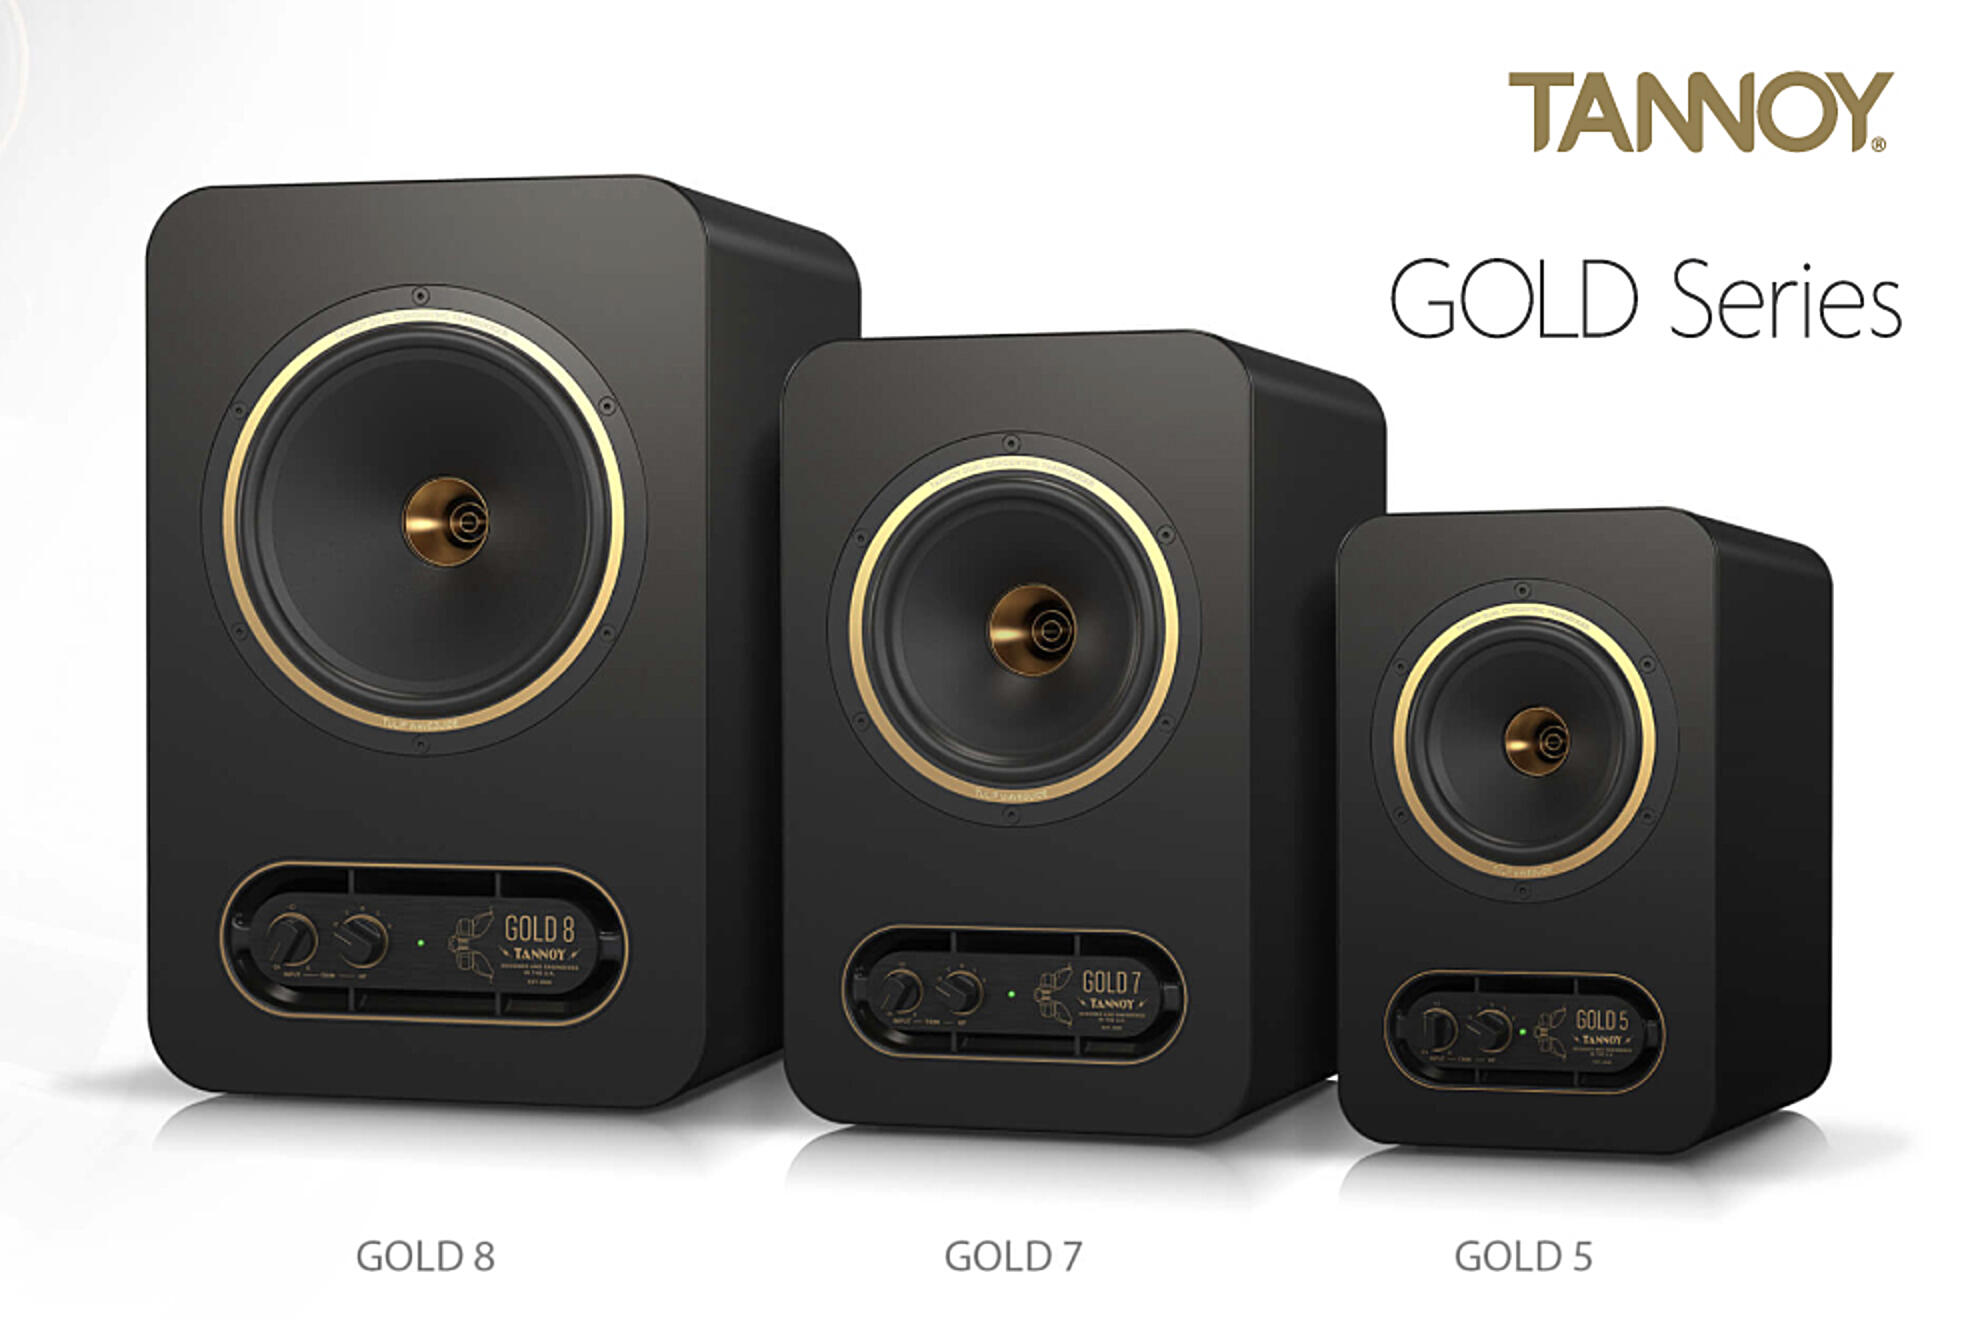 Gold-Tannoy-3-in-Gold-Series-350-x-233